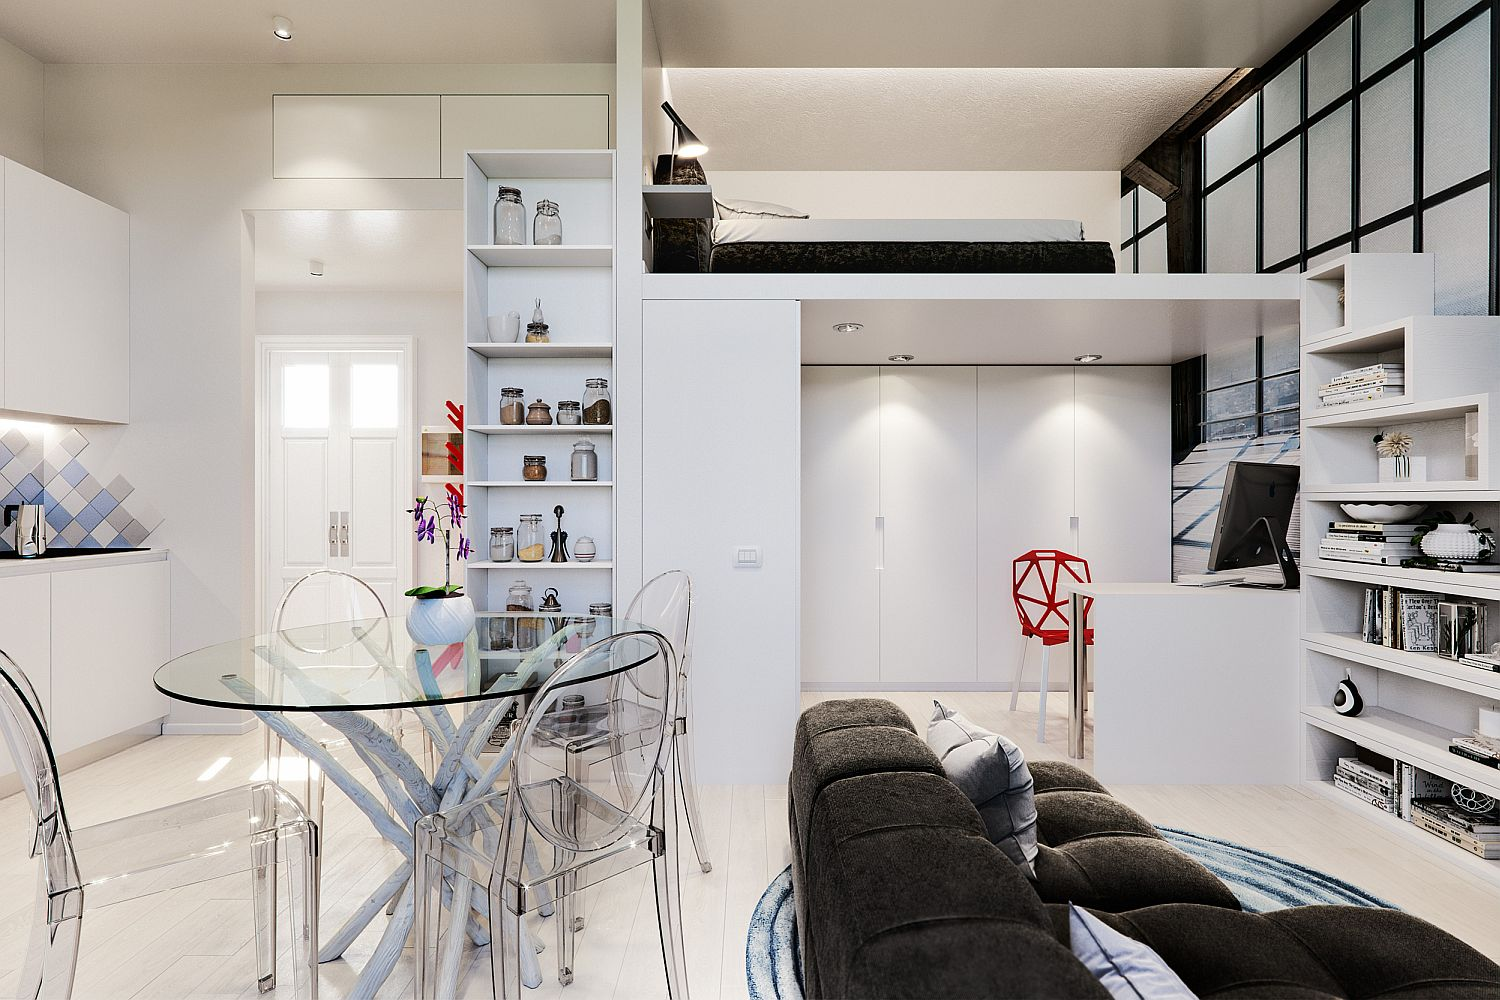 Small Studio apartment for sudents to rent in Milan has a space-savvy modern design